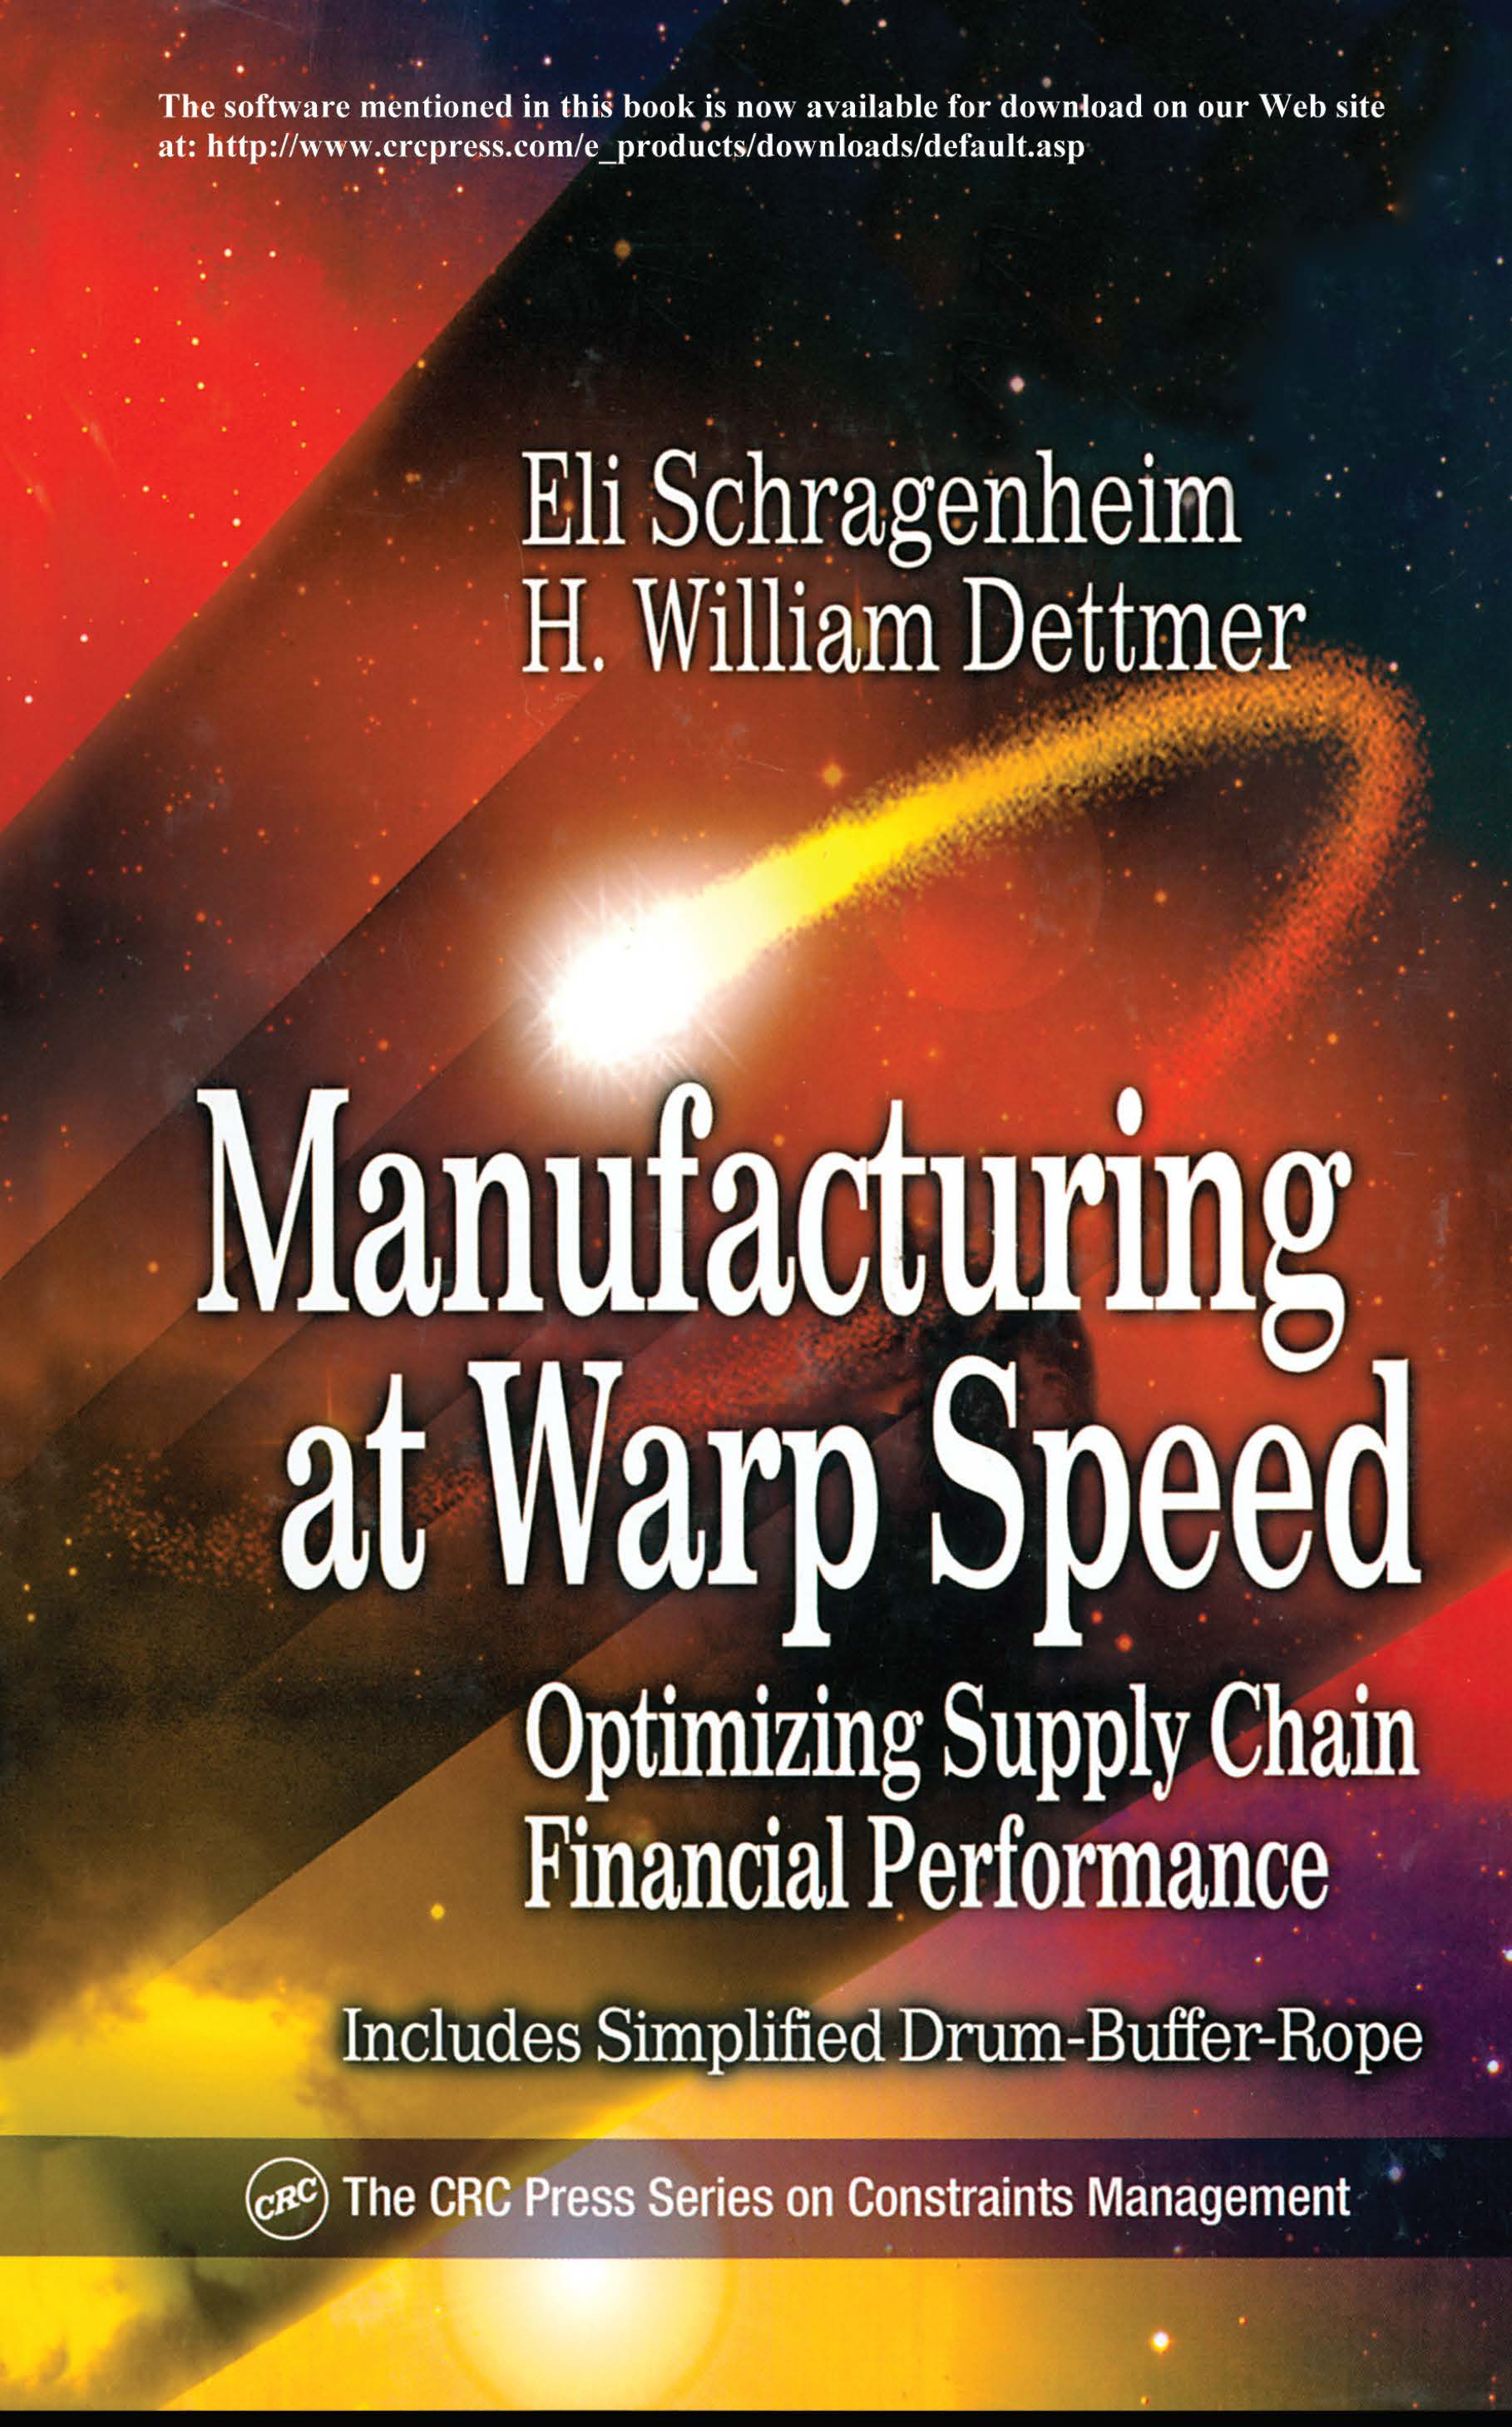 Manufacturing at Warp Speed: Optimizing Supply Chain Financial Performance book cover